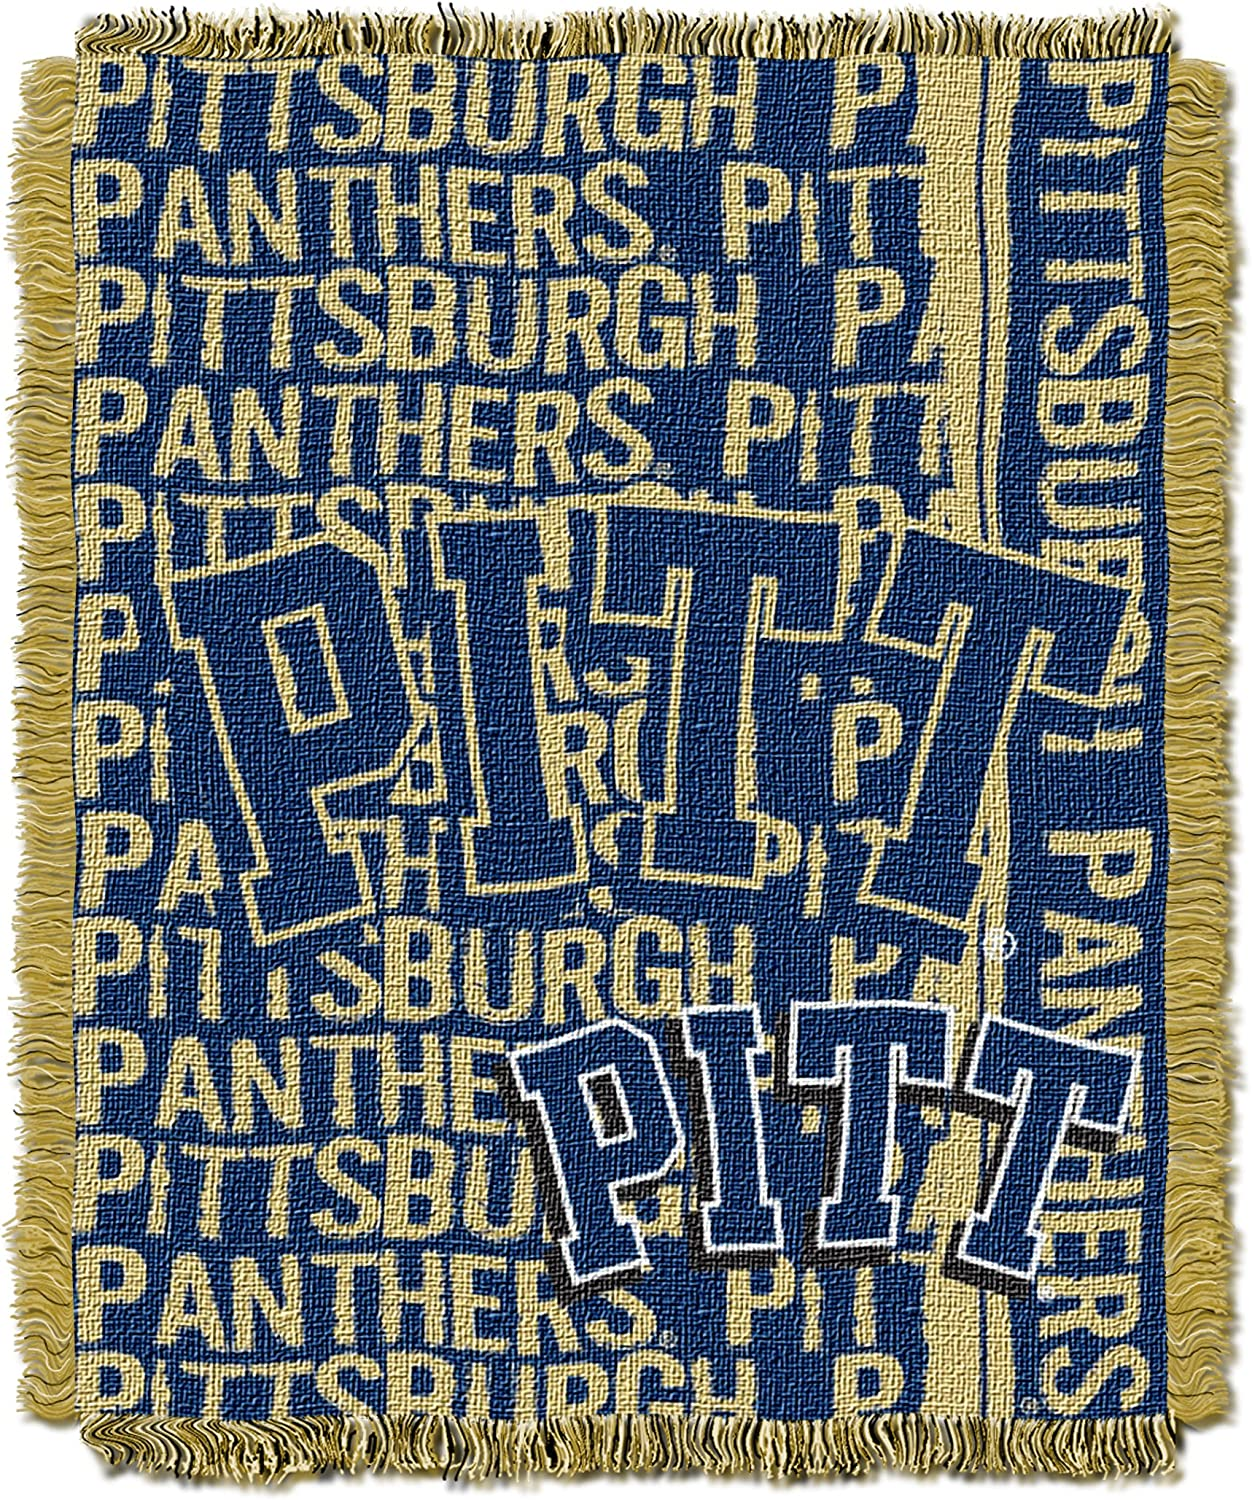 Officially Licensed NCAA Double Play Triple Woven Jacquard Throw Blanket 48 x 60 Multi Color